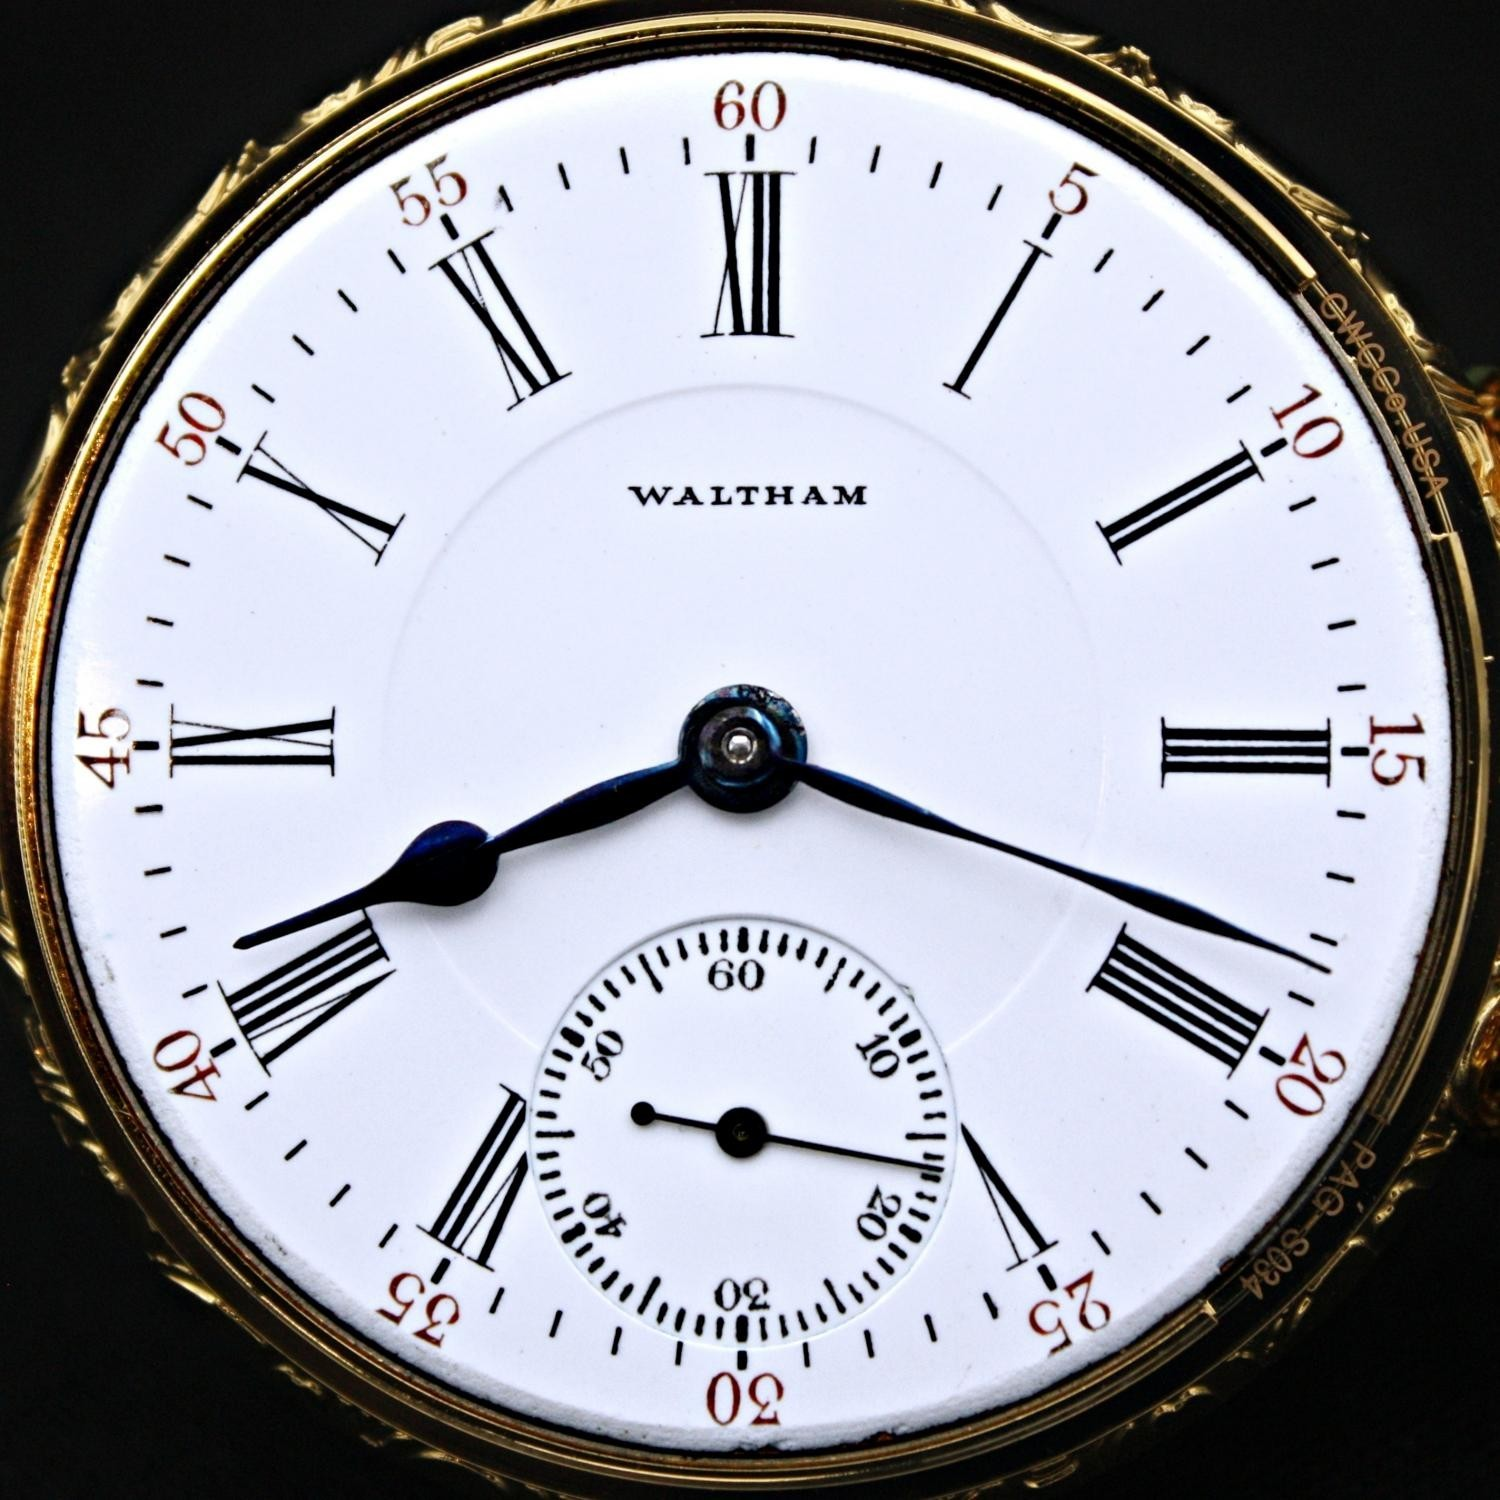 Image of Waltham P.S. Bartlett #22011629 Dial